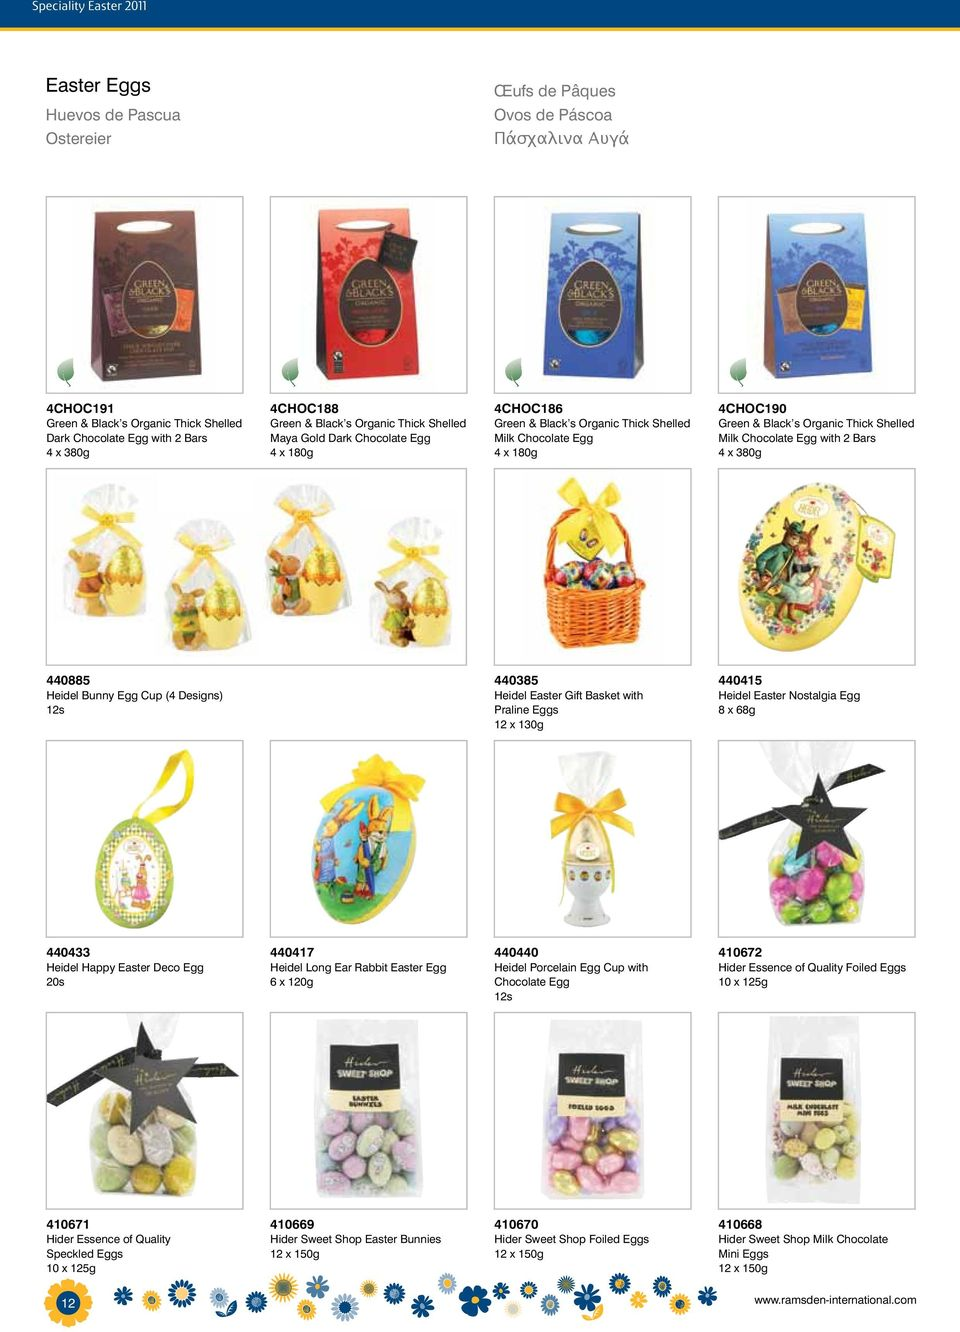 Shelled Milk Chocolate Egg with 2 Bars 4 x 380g 440885 Heidel Bunny Egg Cup (4 Designs) 12s 440385 Heidel Easter Gift Basket with Praline Eggs 12 x 130g 440415 Heidel Easter Nostalgia Egg 8 x 68g